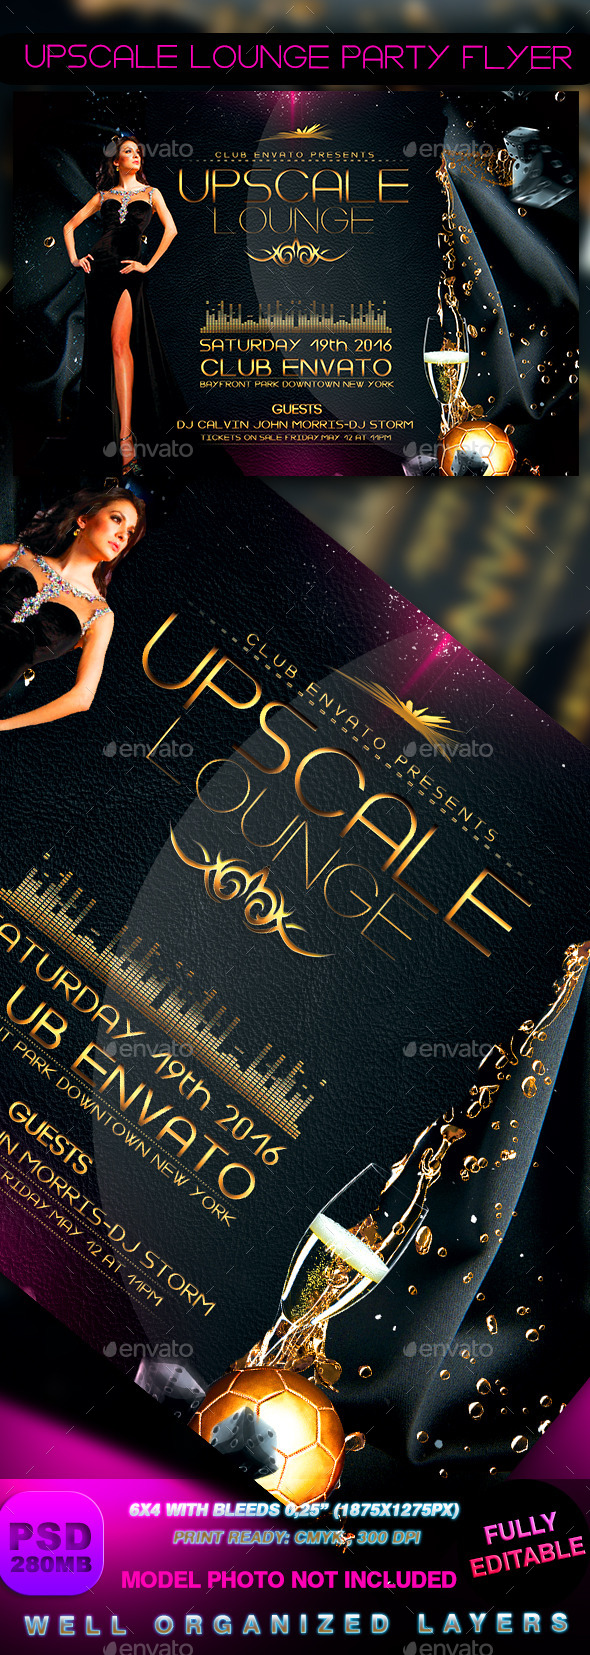 Upscale Lounge Party Flyer - Events Flyers